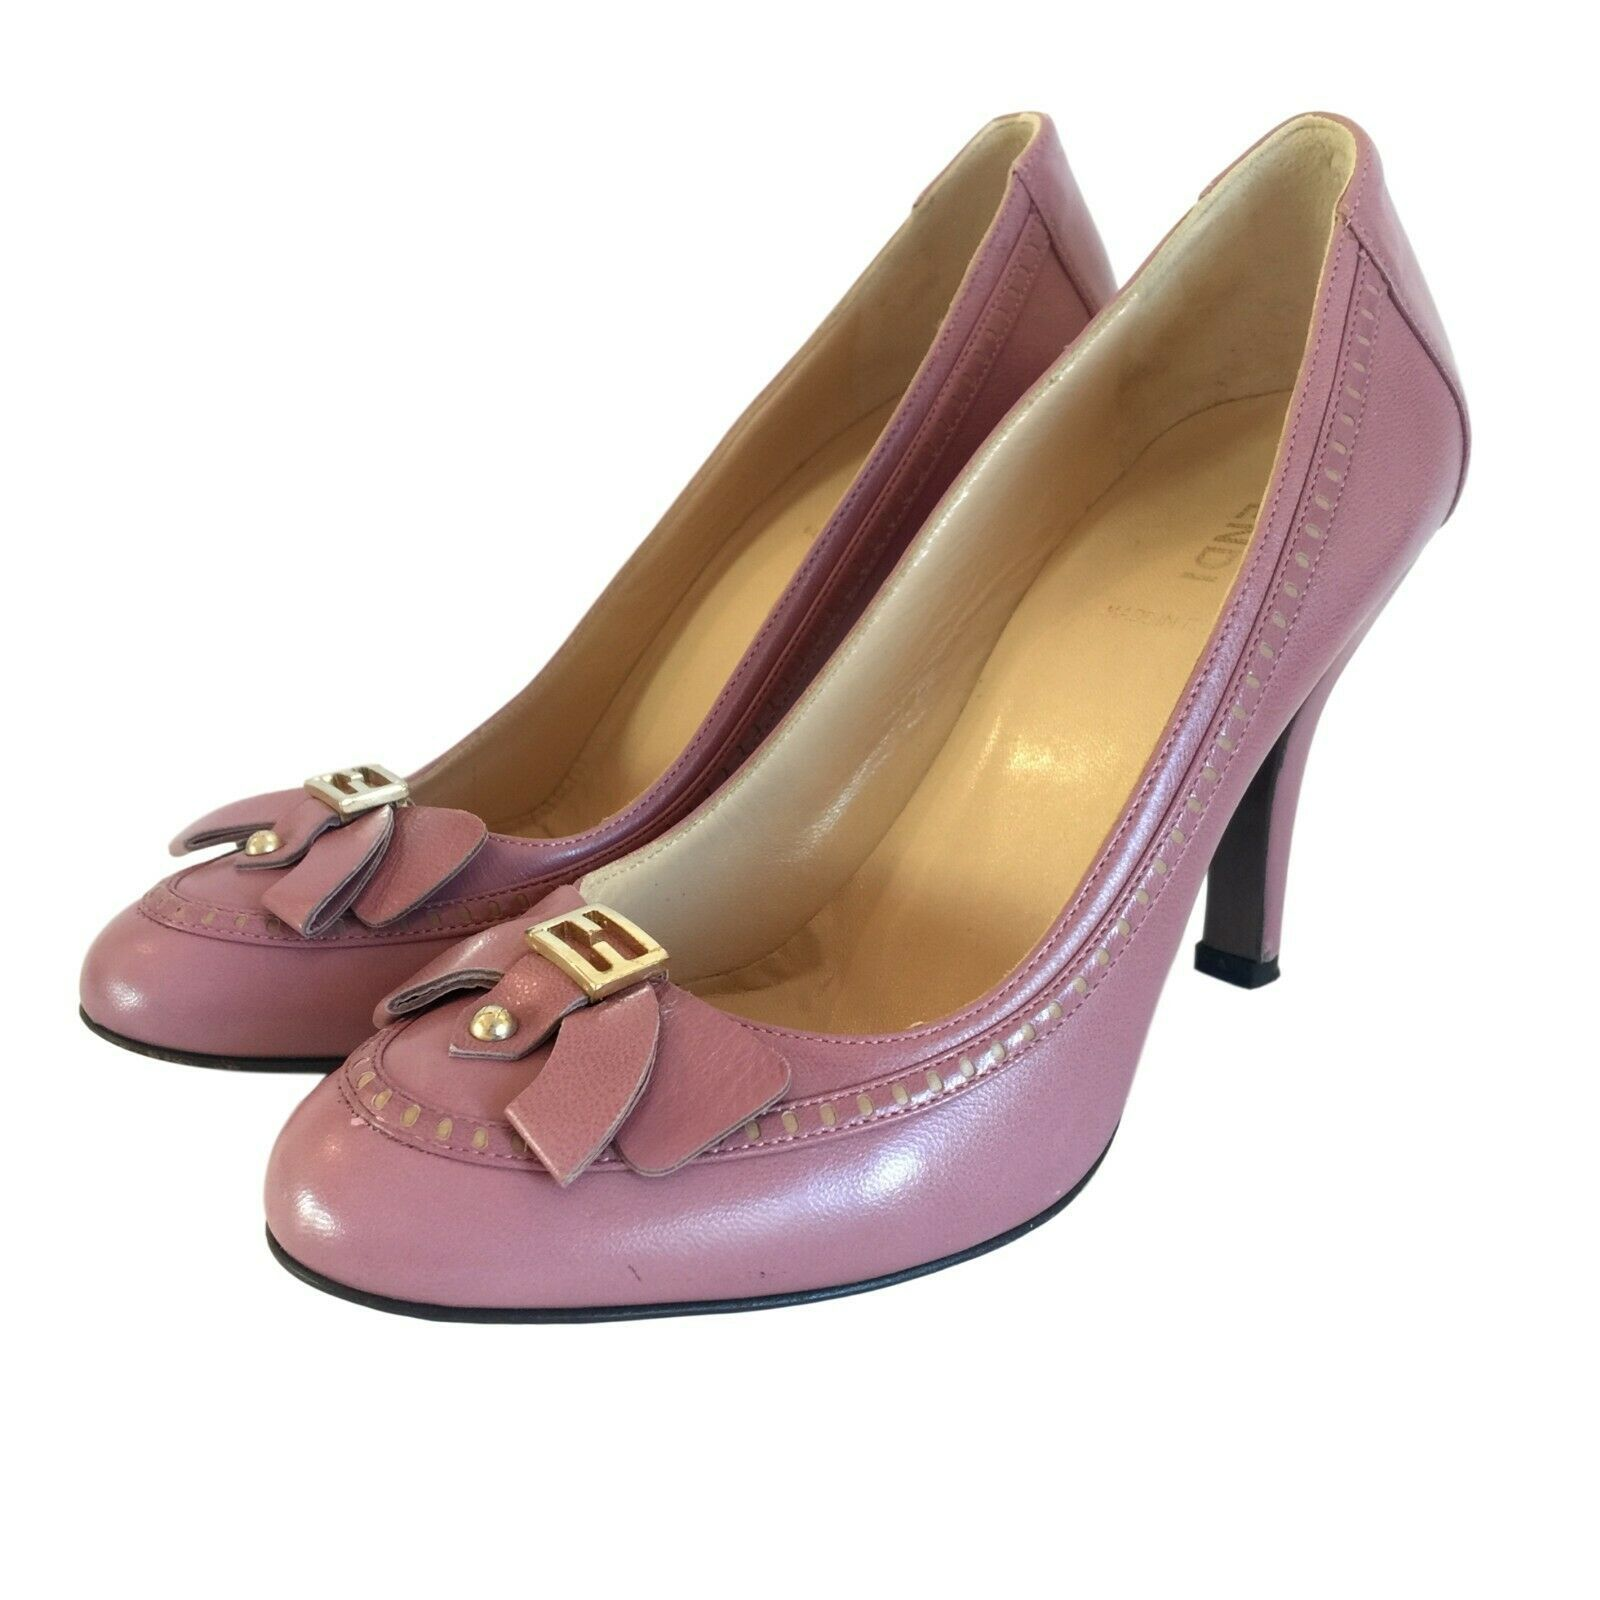 FENDI Pink Leather Heels Pumps With Gold Hardware 36 / 6 Auth 100% - $99.00